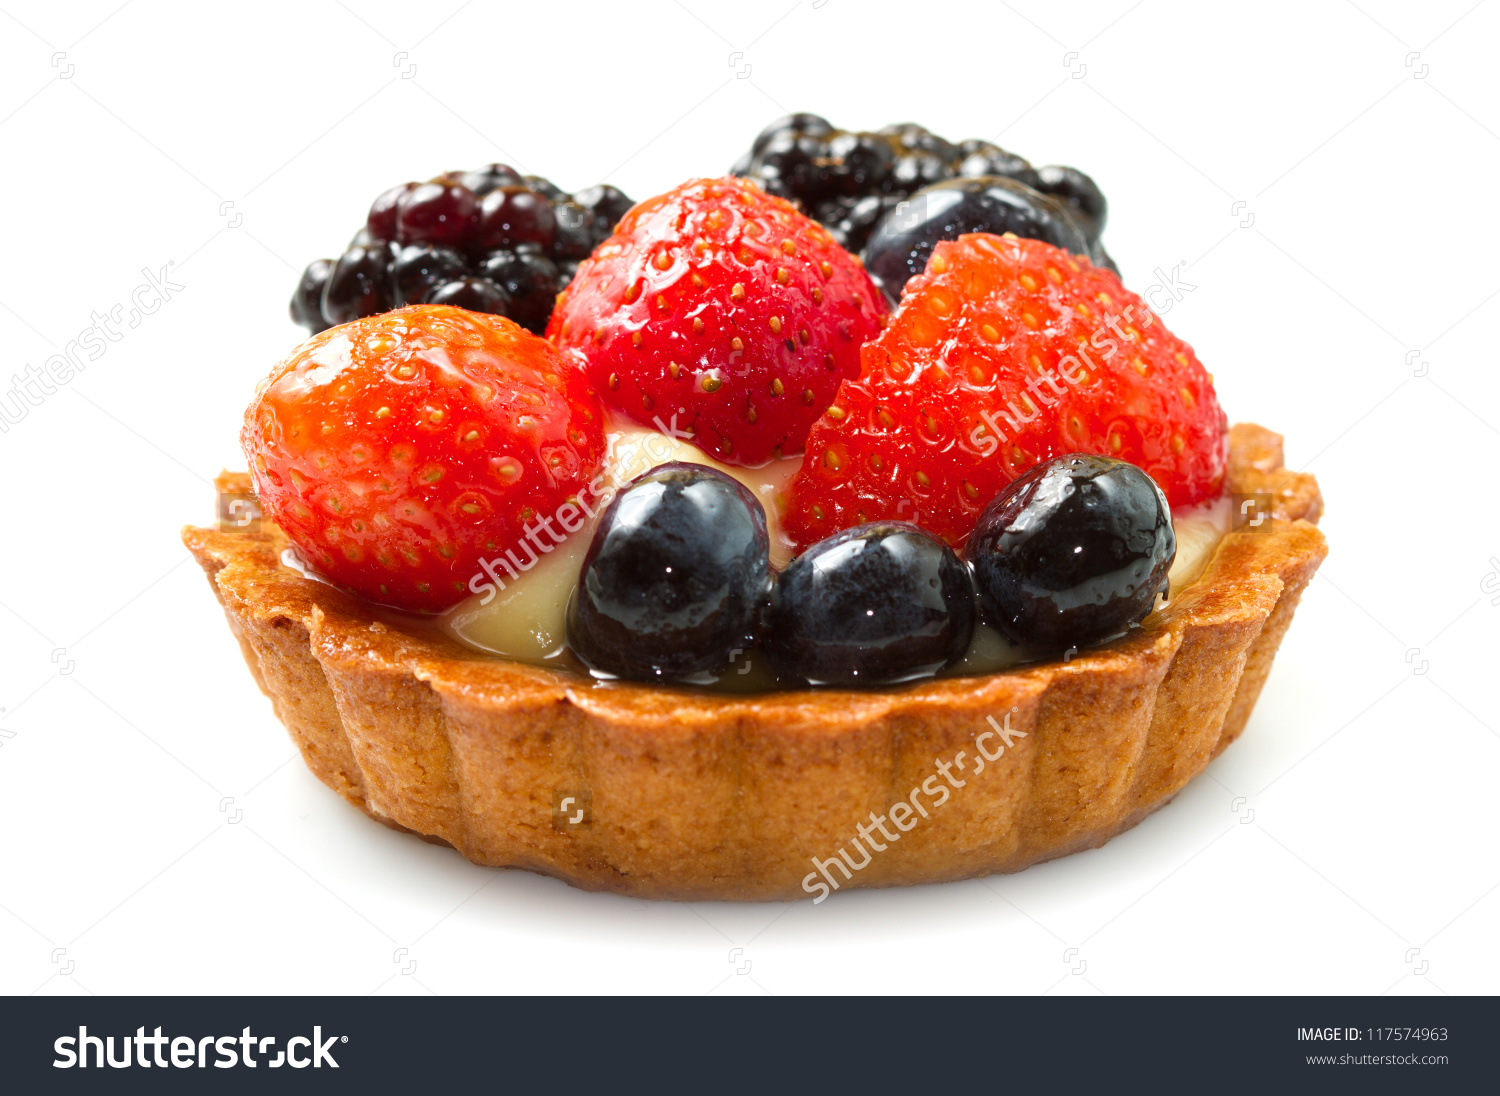 Fresh Fruit Tart On White Background Stock Photo 117574963.